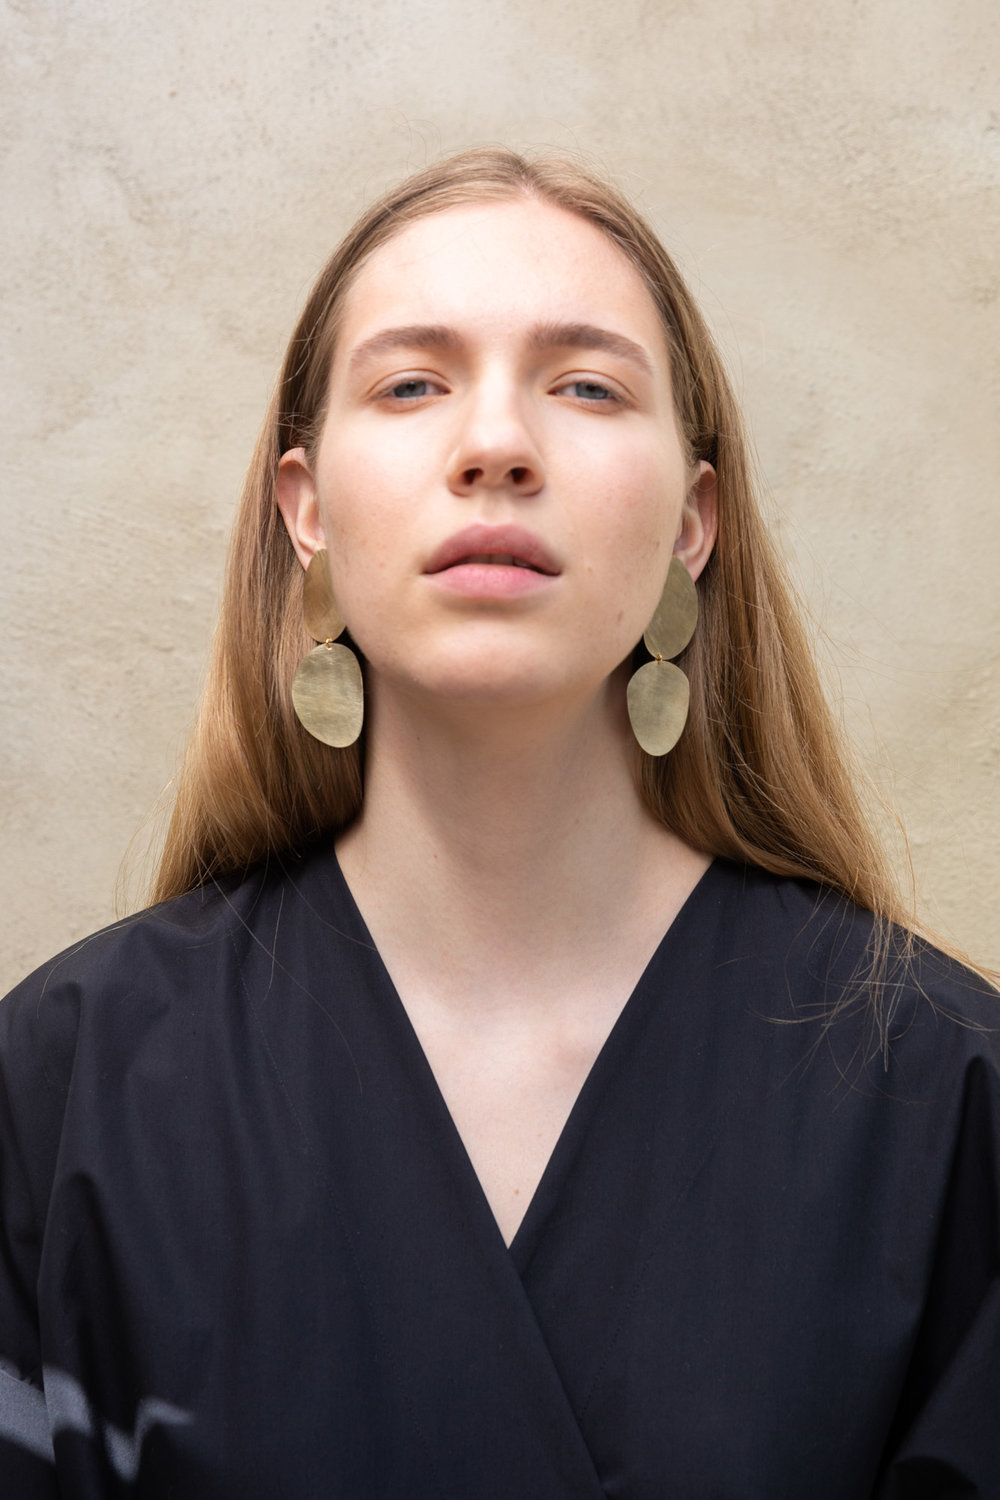 Two stones earrings